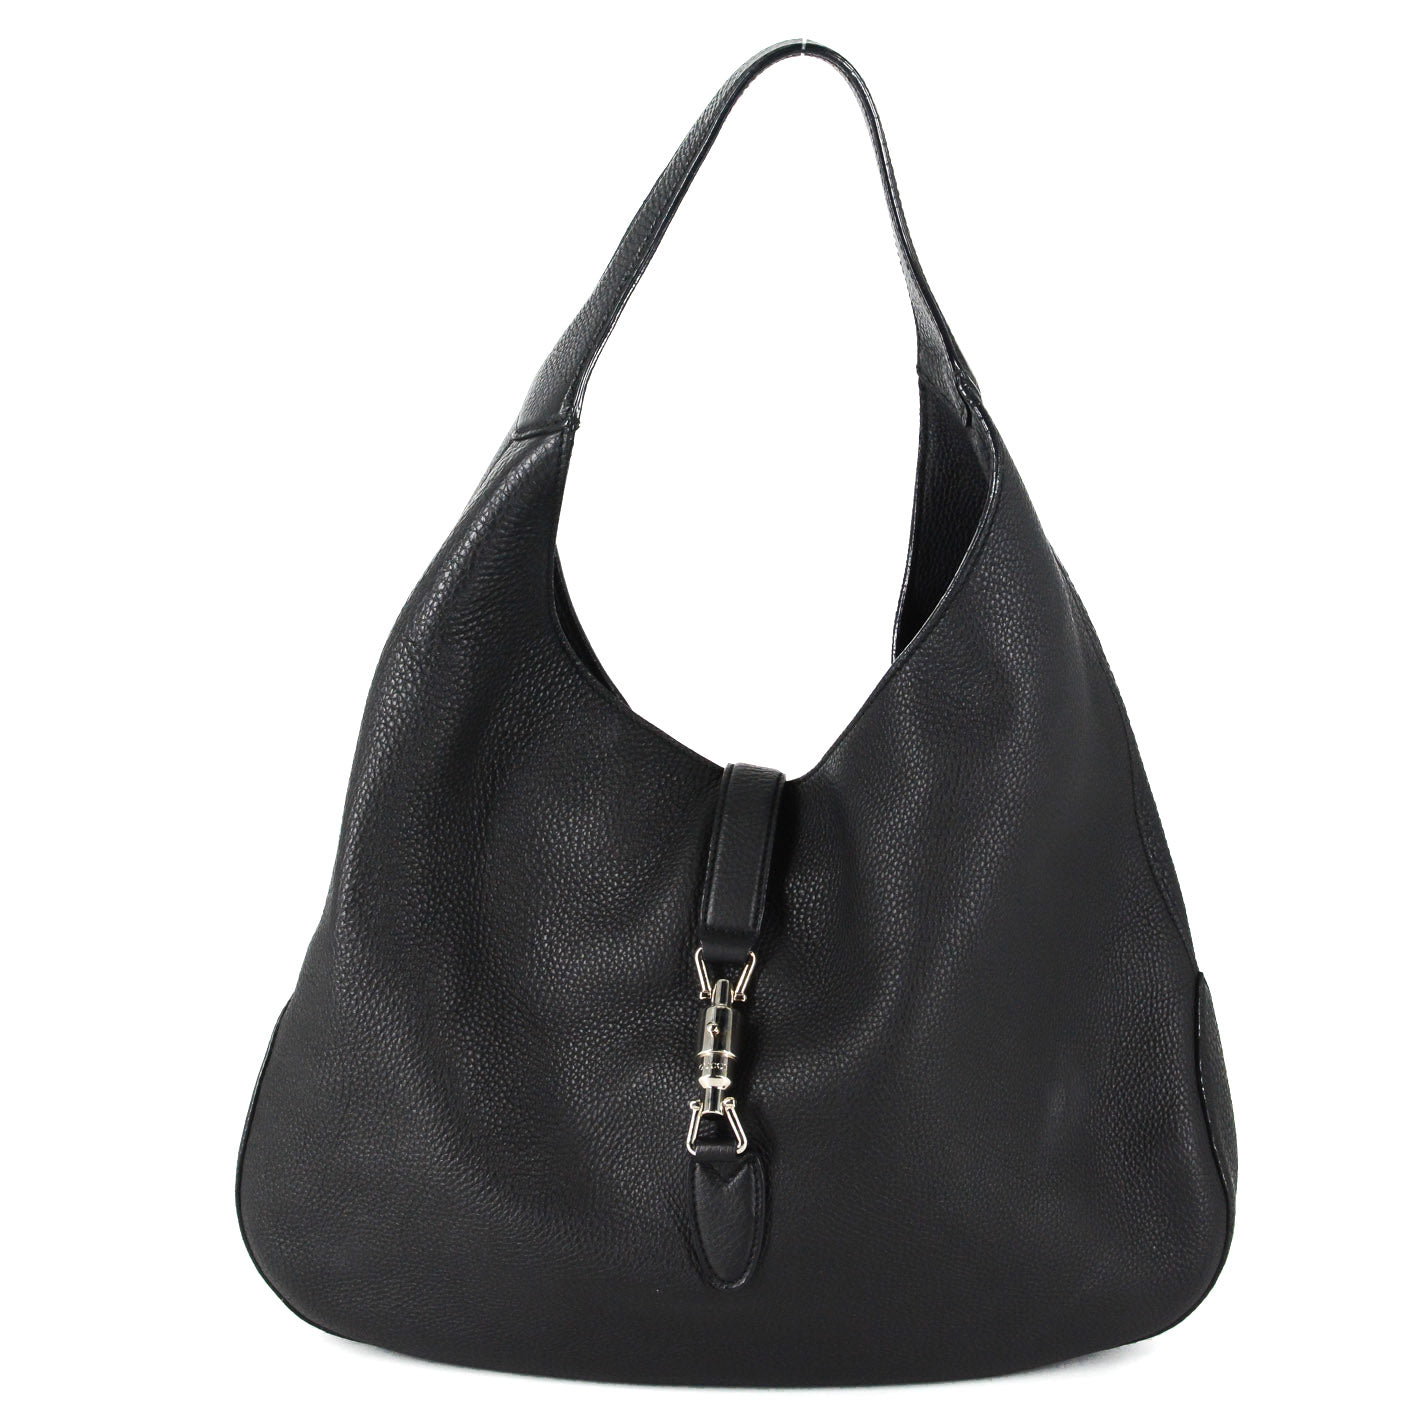 df0be69a7 Please try a little later. Fine, Take Me Back. ×. GUCCI Soft Leather Hobo  Bag in Black